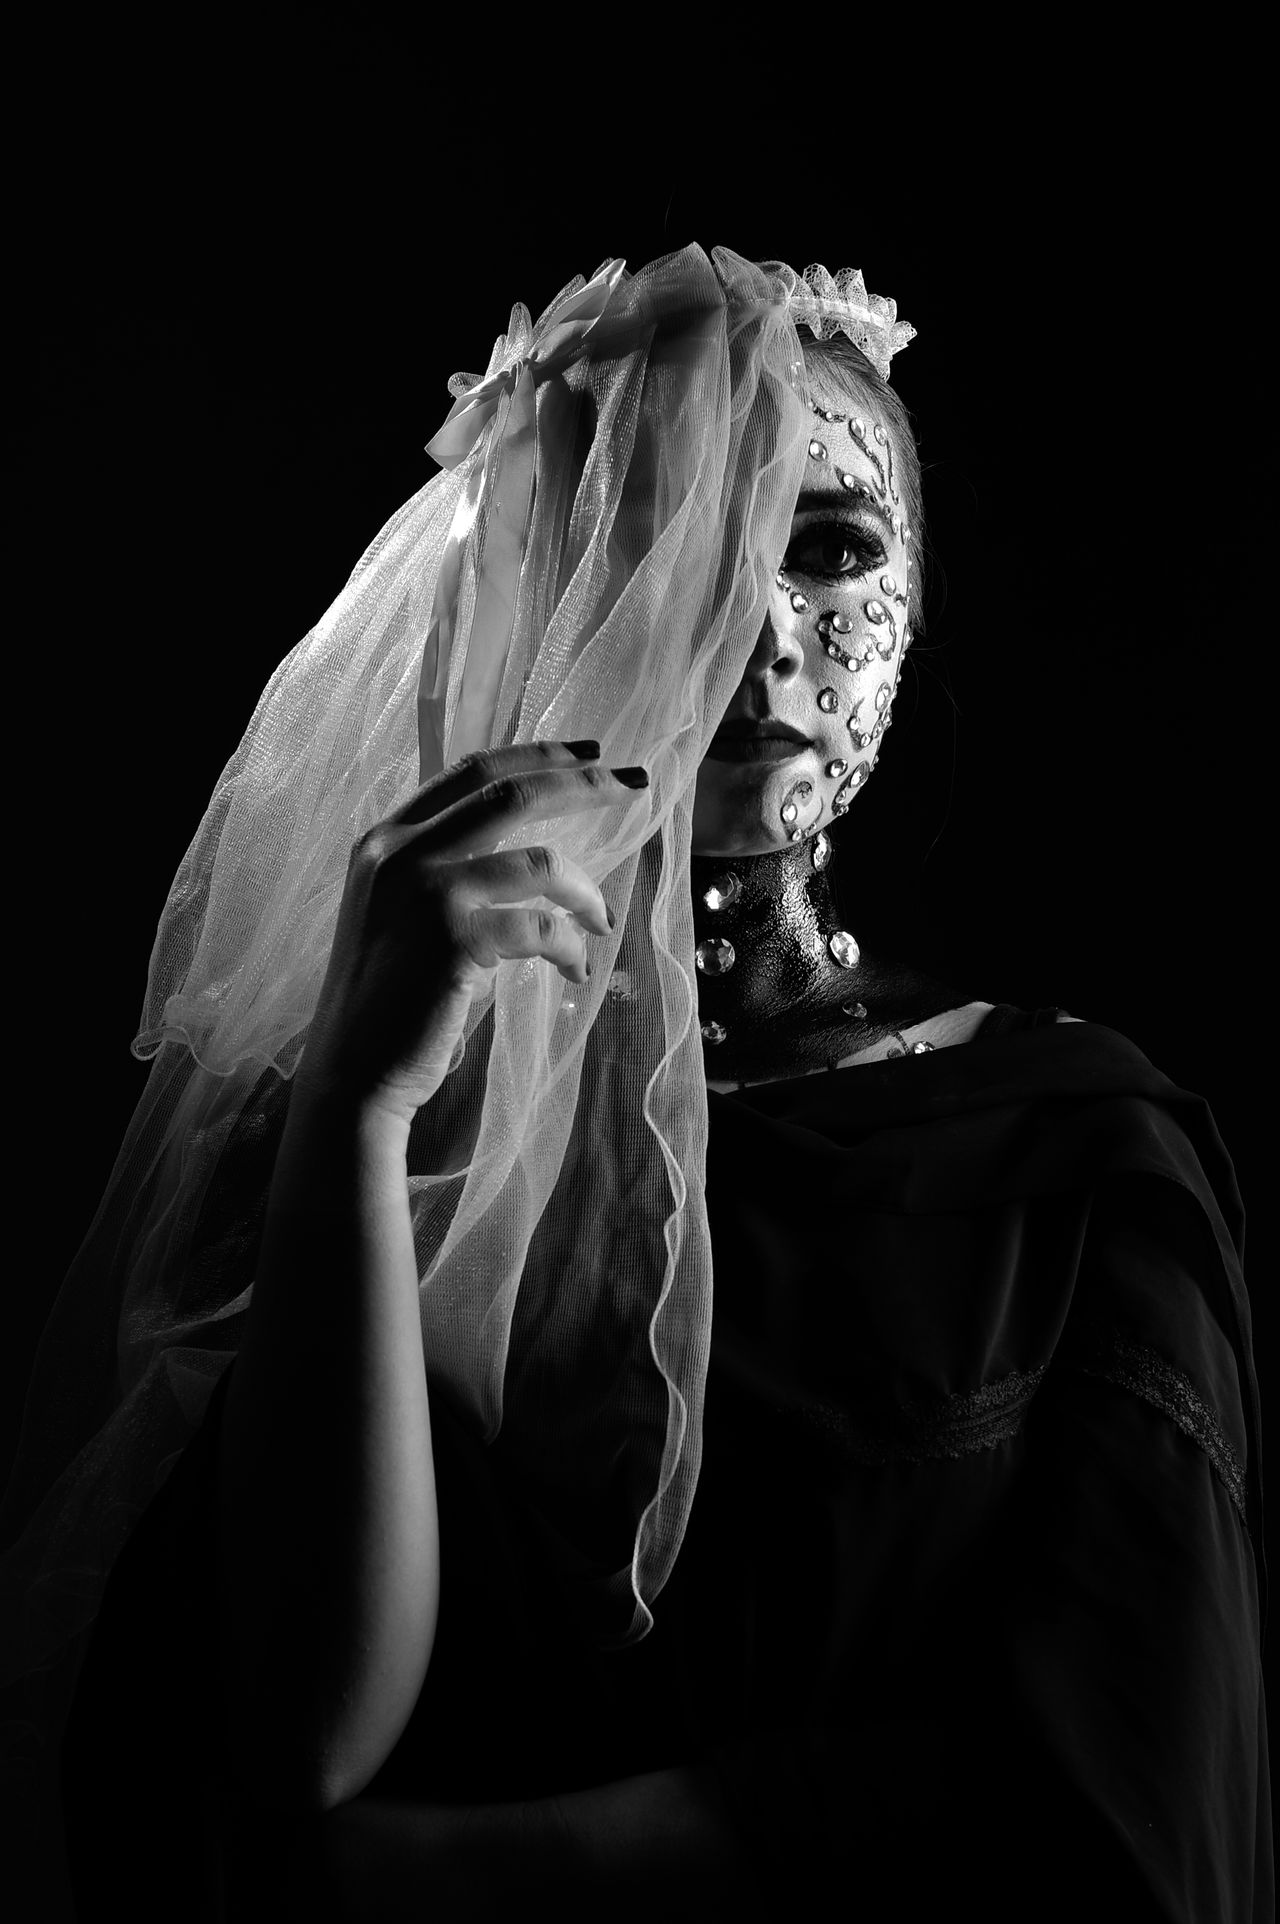 Beautiful Woman Black Background Close-up Day Halloween Indoors  Lifestyles One Person People Real People Studio Shot The Portraitist - 2017 EyeEm Awards Young Adult Young Women